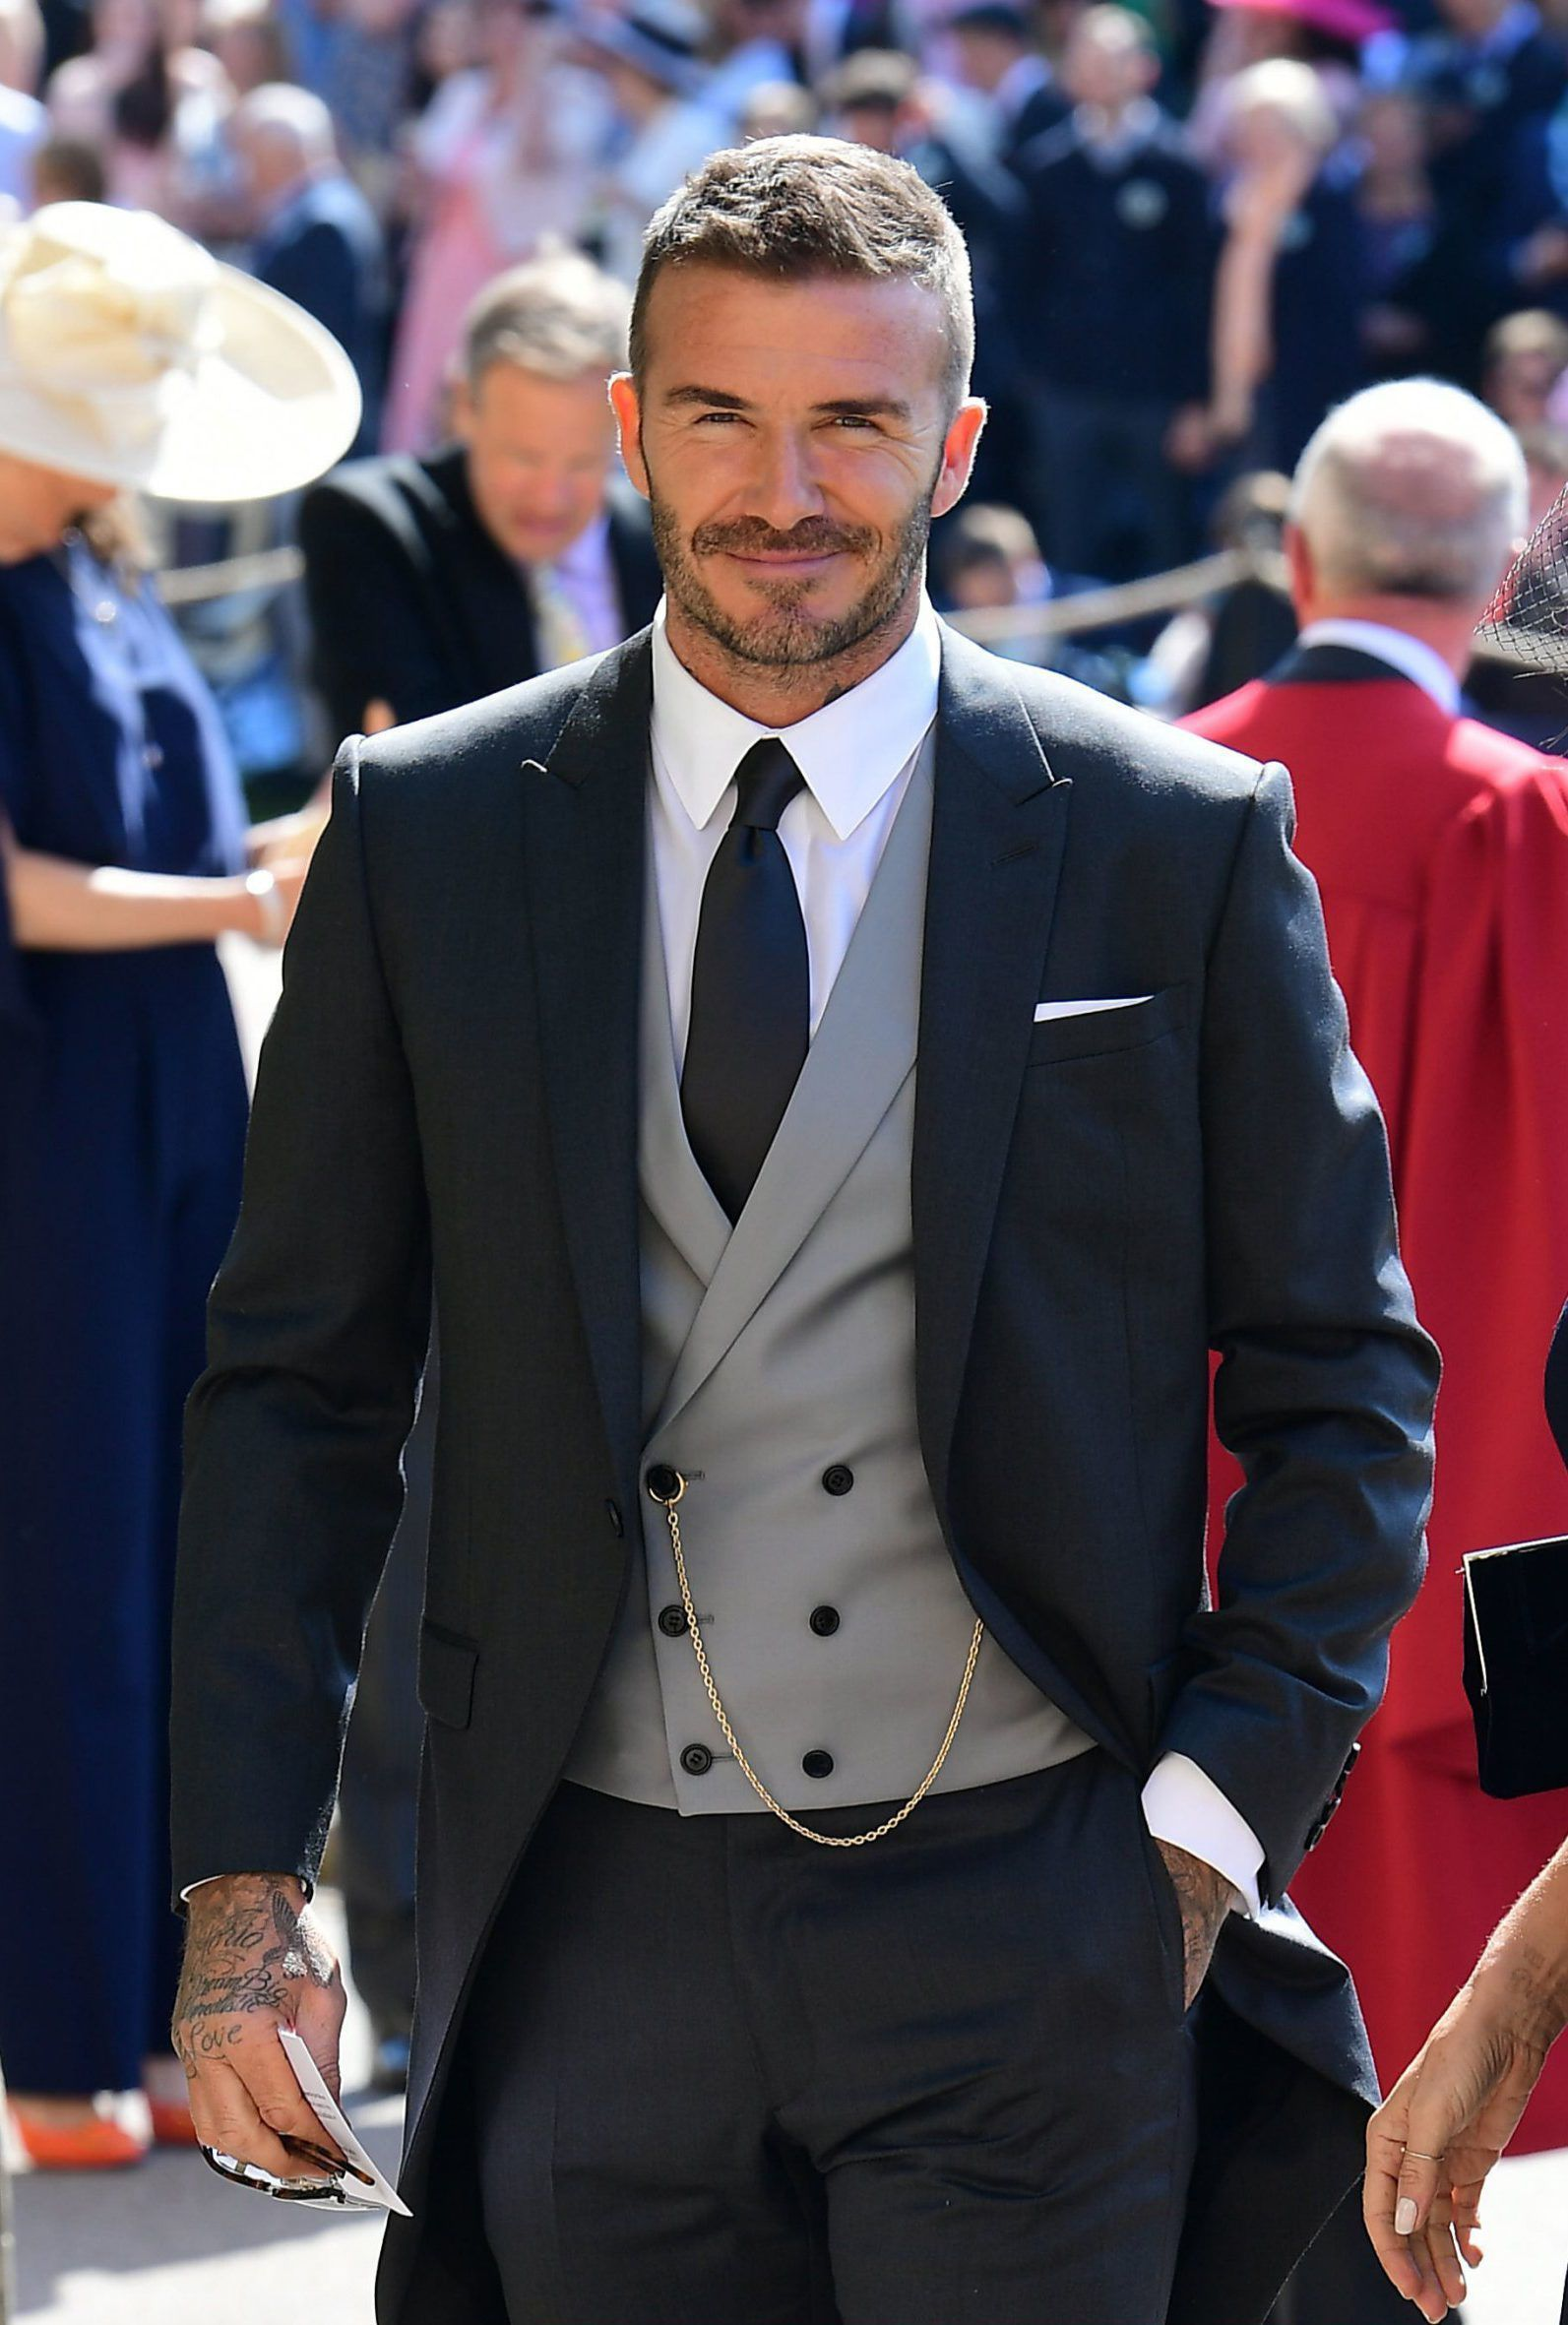 david beckham looked like a king at royal wedding and people can't